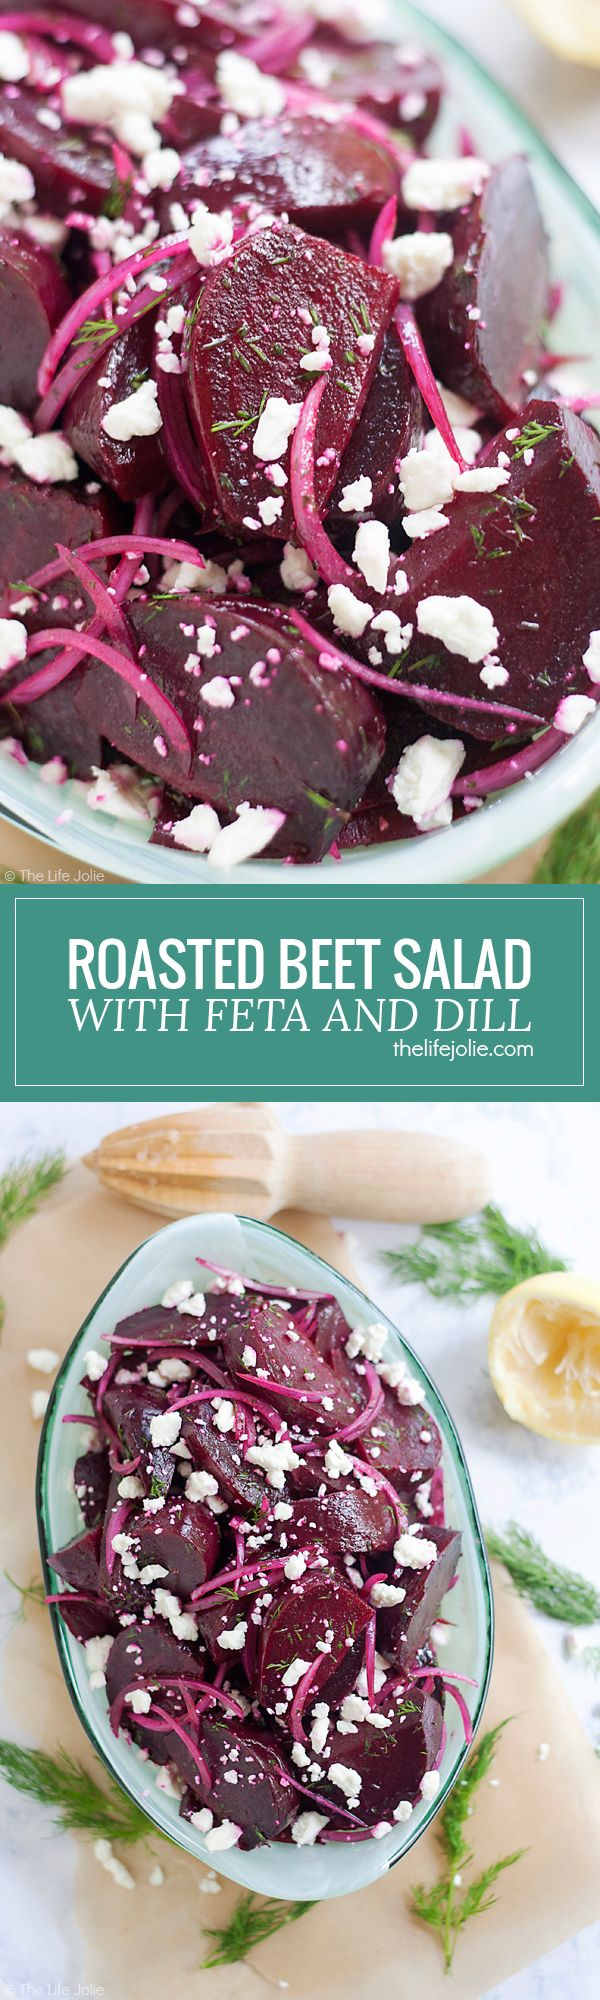 Try this Roasted Beet Salad with Feta and Dill: it's an easy side dish recipe and is a great alternative to the usual holiday sides. Served cold with citrus and olive oil as a dressing it is a healthy and fresh option for any season!